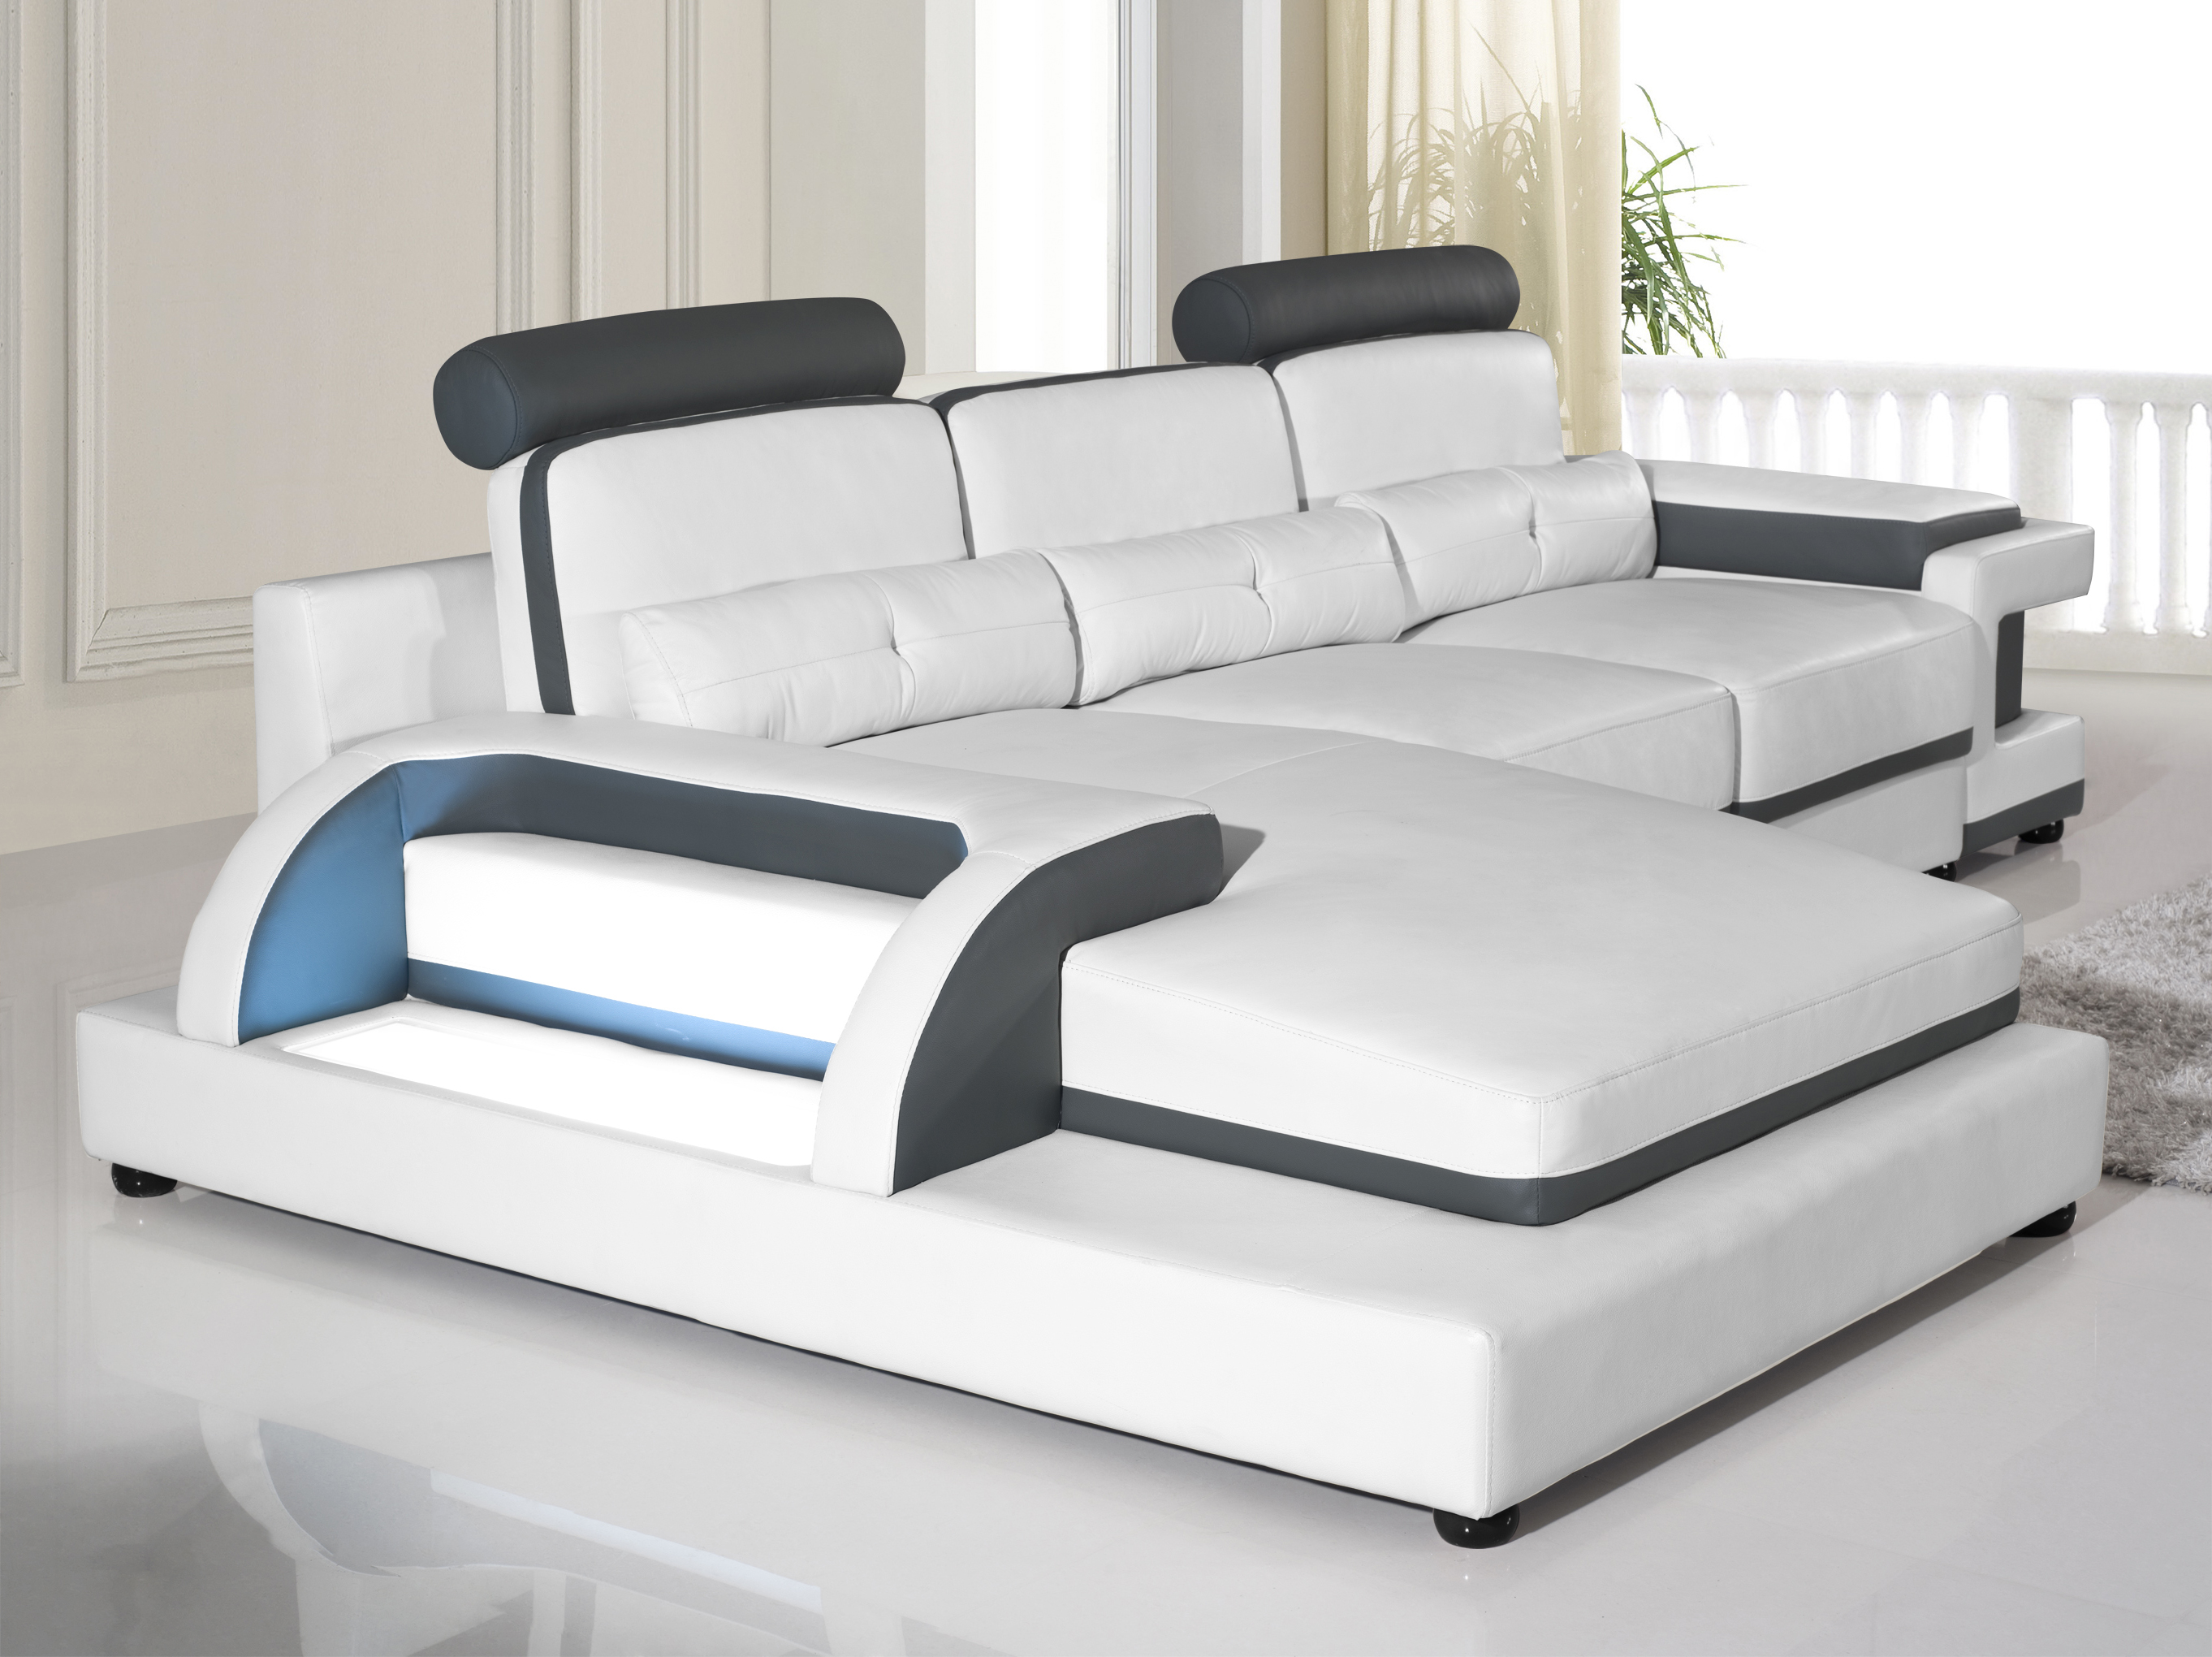 Torro Sectional Sofa L With Led Lights White Black Trim